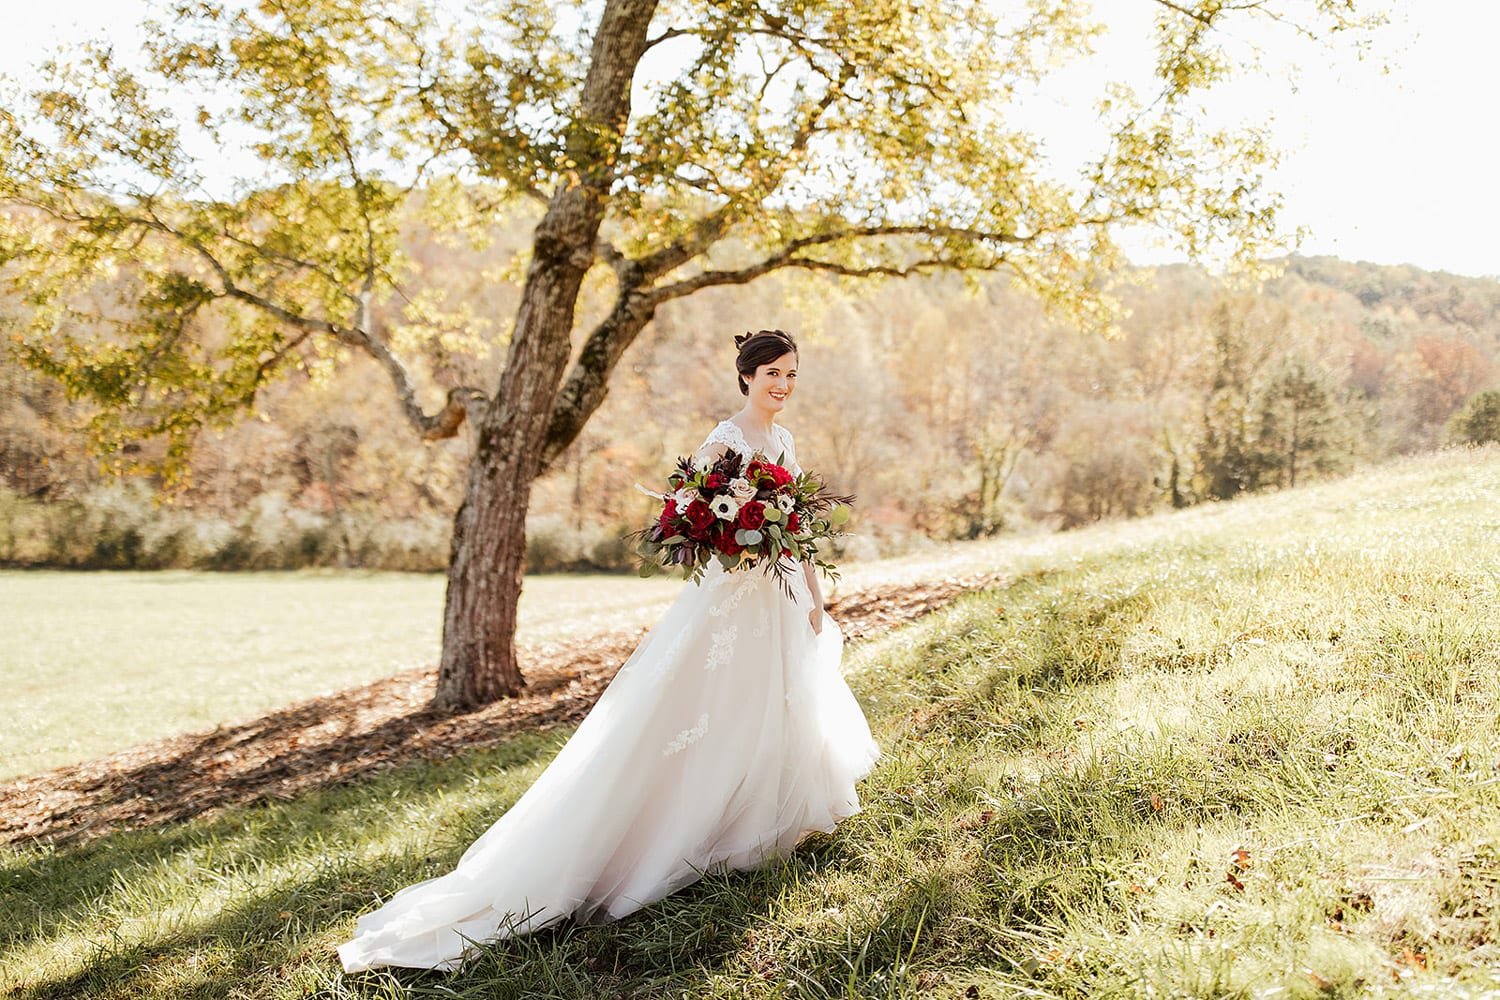 Bride walks in pasture with flowers by tree